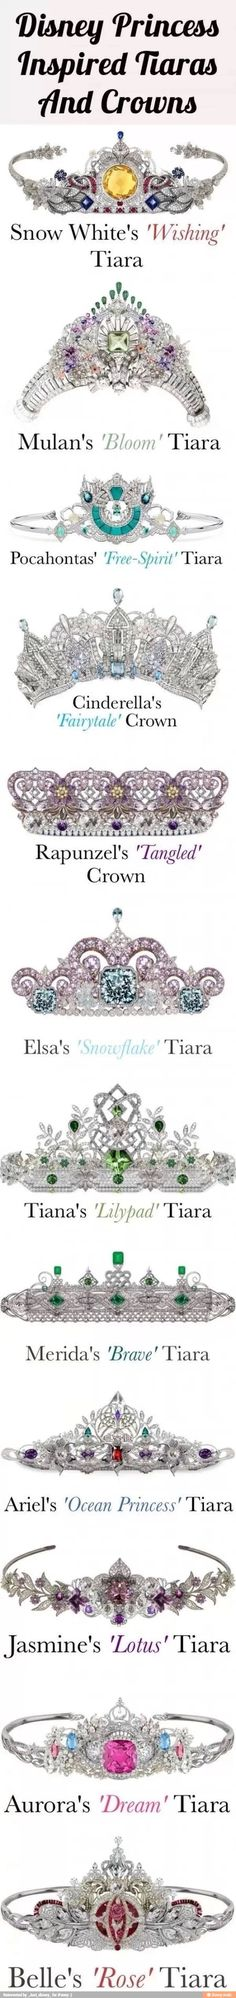 Look at these amazing Disney Princess inspired crowns!